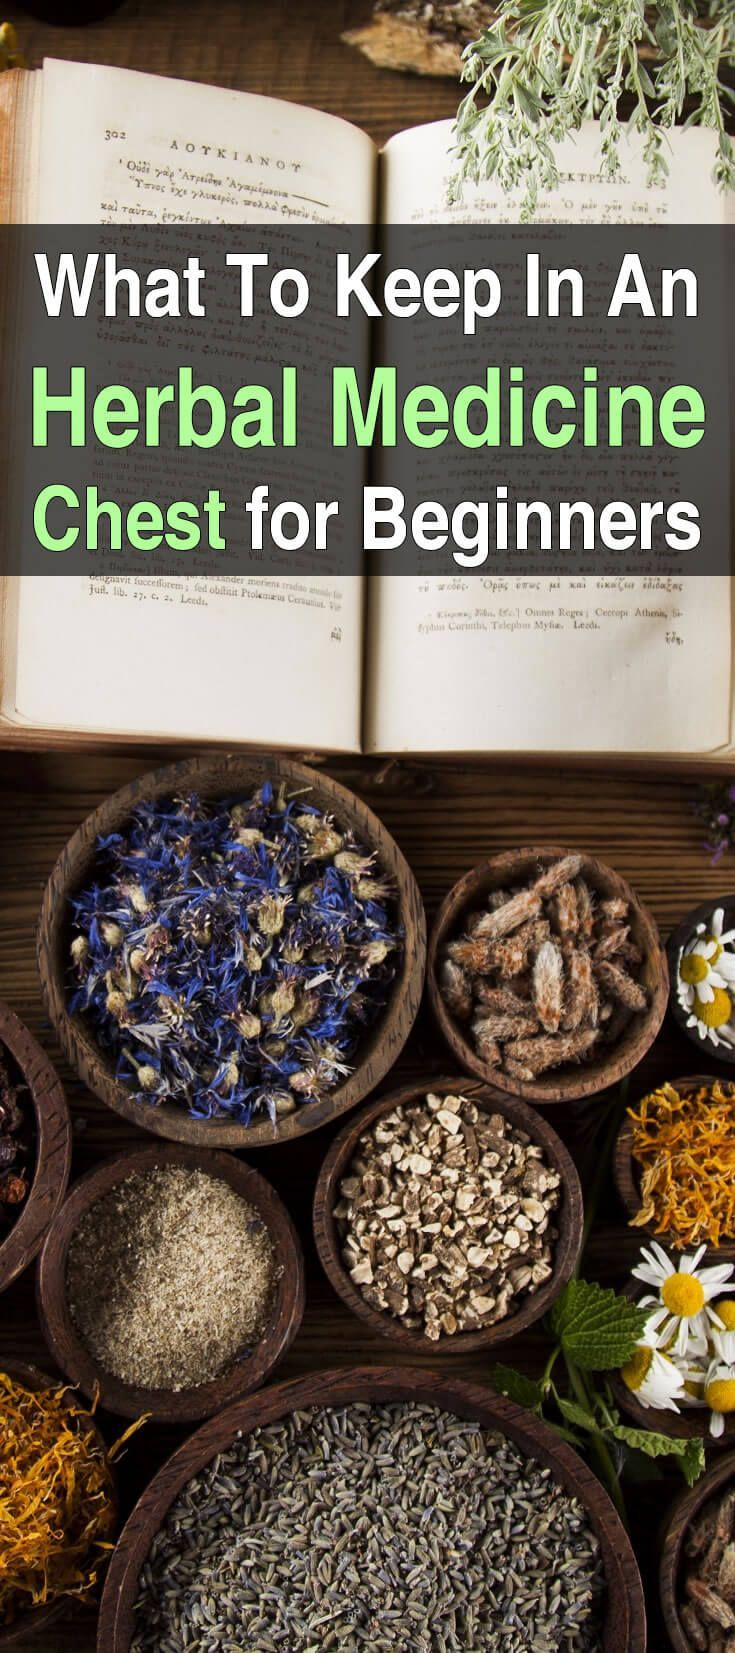 to Build a Medicinal First Aid Kit This article lists the most important herbal medicines and essential oils and what they're for. This is the place to start if you're new to all this.This article lists the most important herbal medicines and essential oils and what they're for. This is the place to start if you're new to all this.